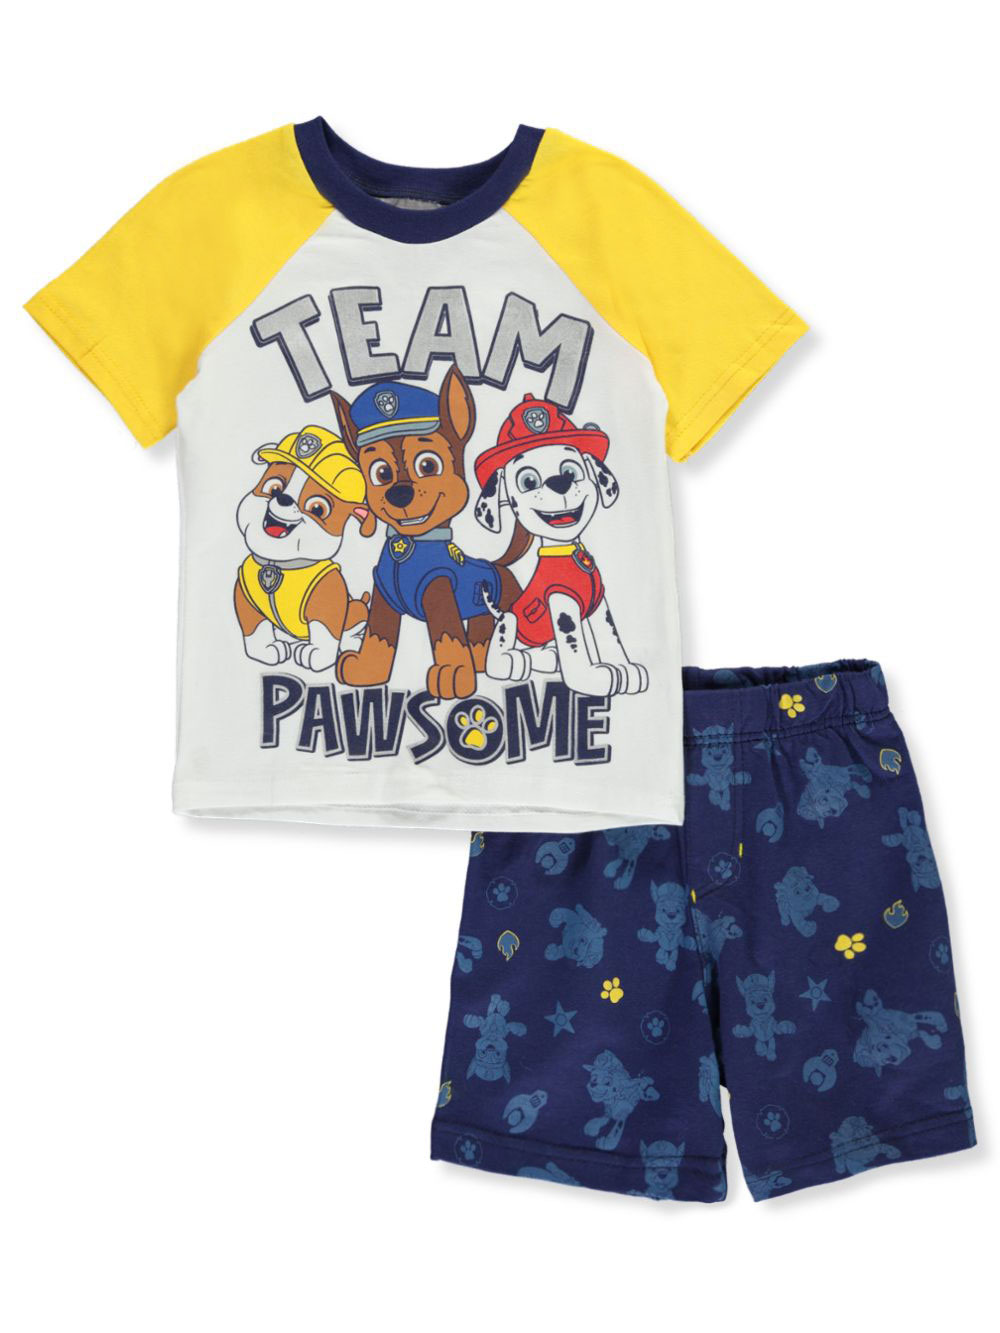 Paw Patrol Toddler Boys Graphic Tank Top and Shorts Outfit Size 4T NWT